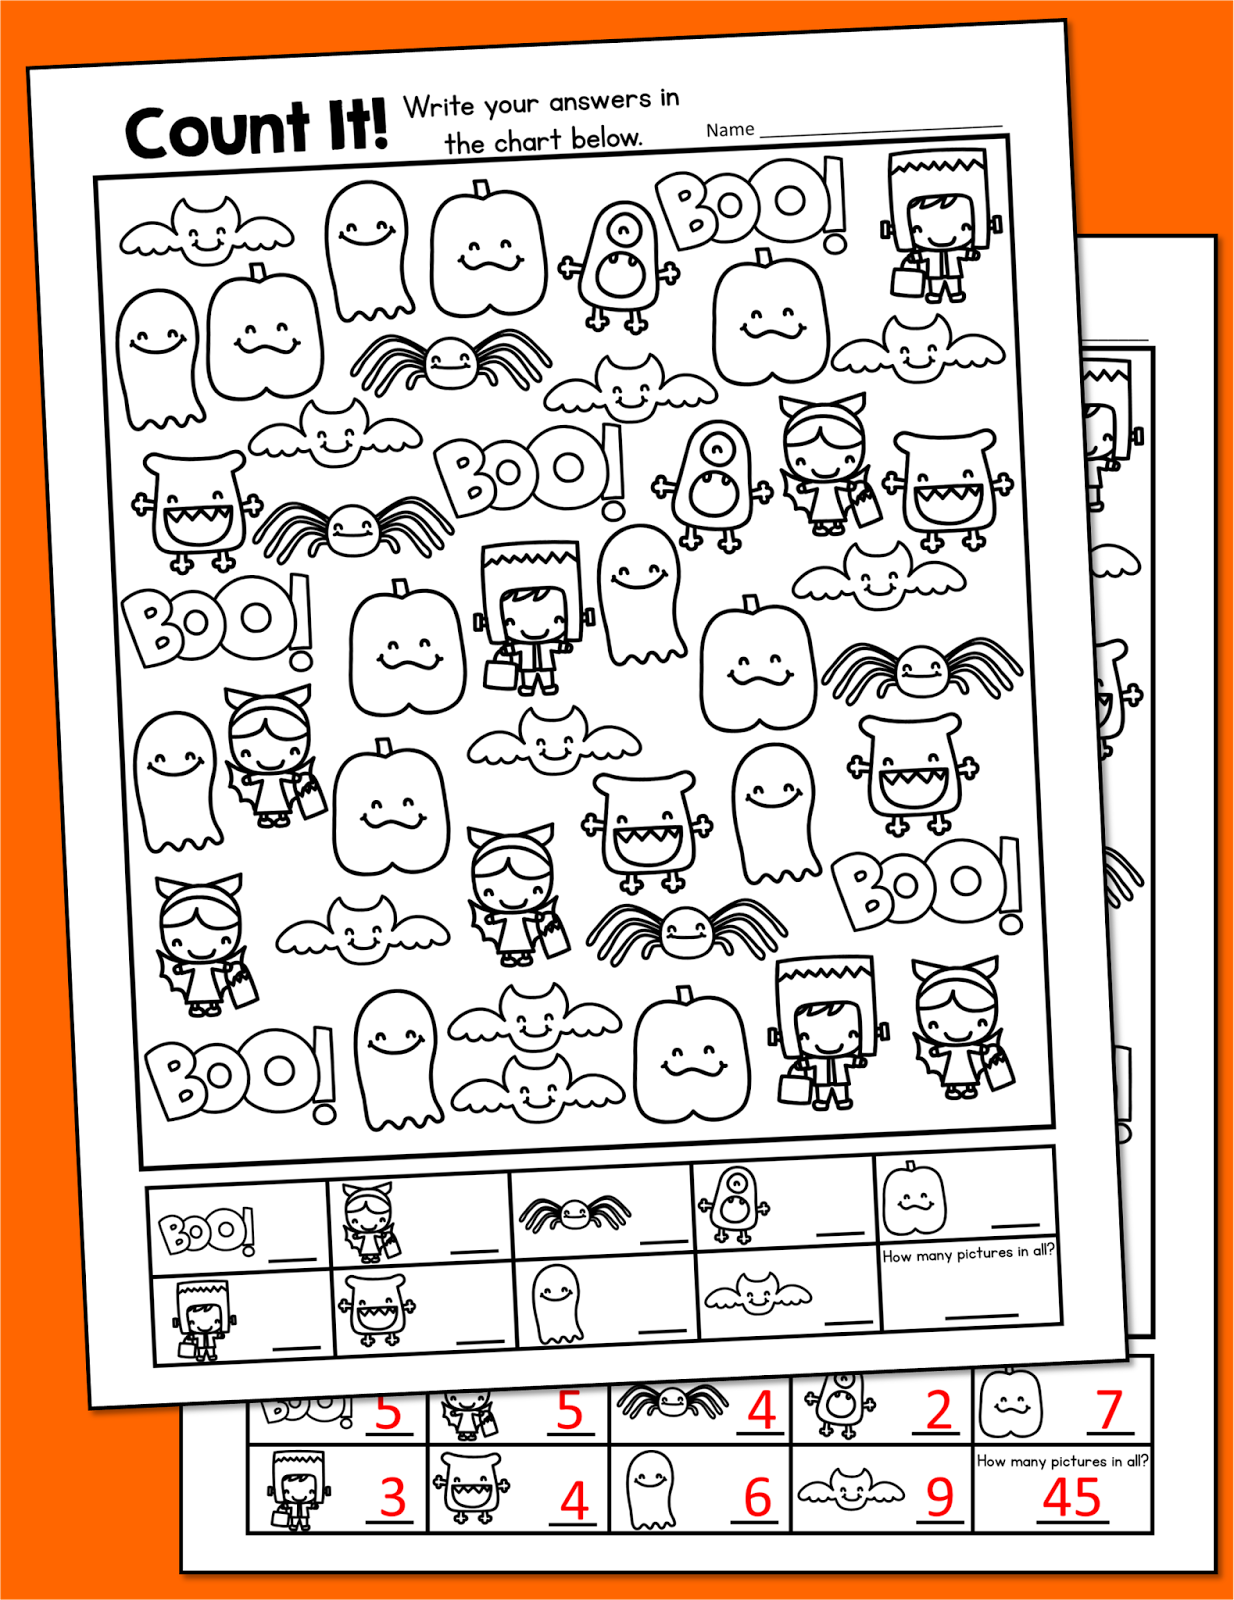 It is a picture of Légend Halloween Activity Sheets Free Printable